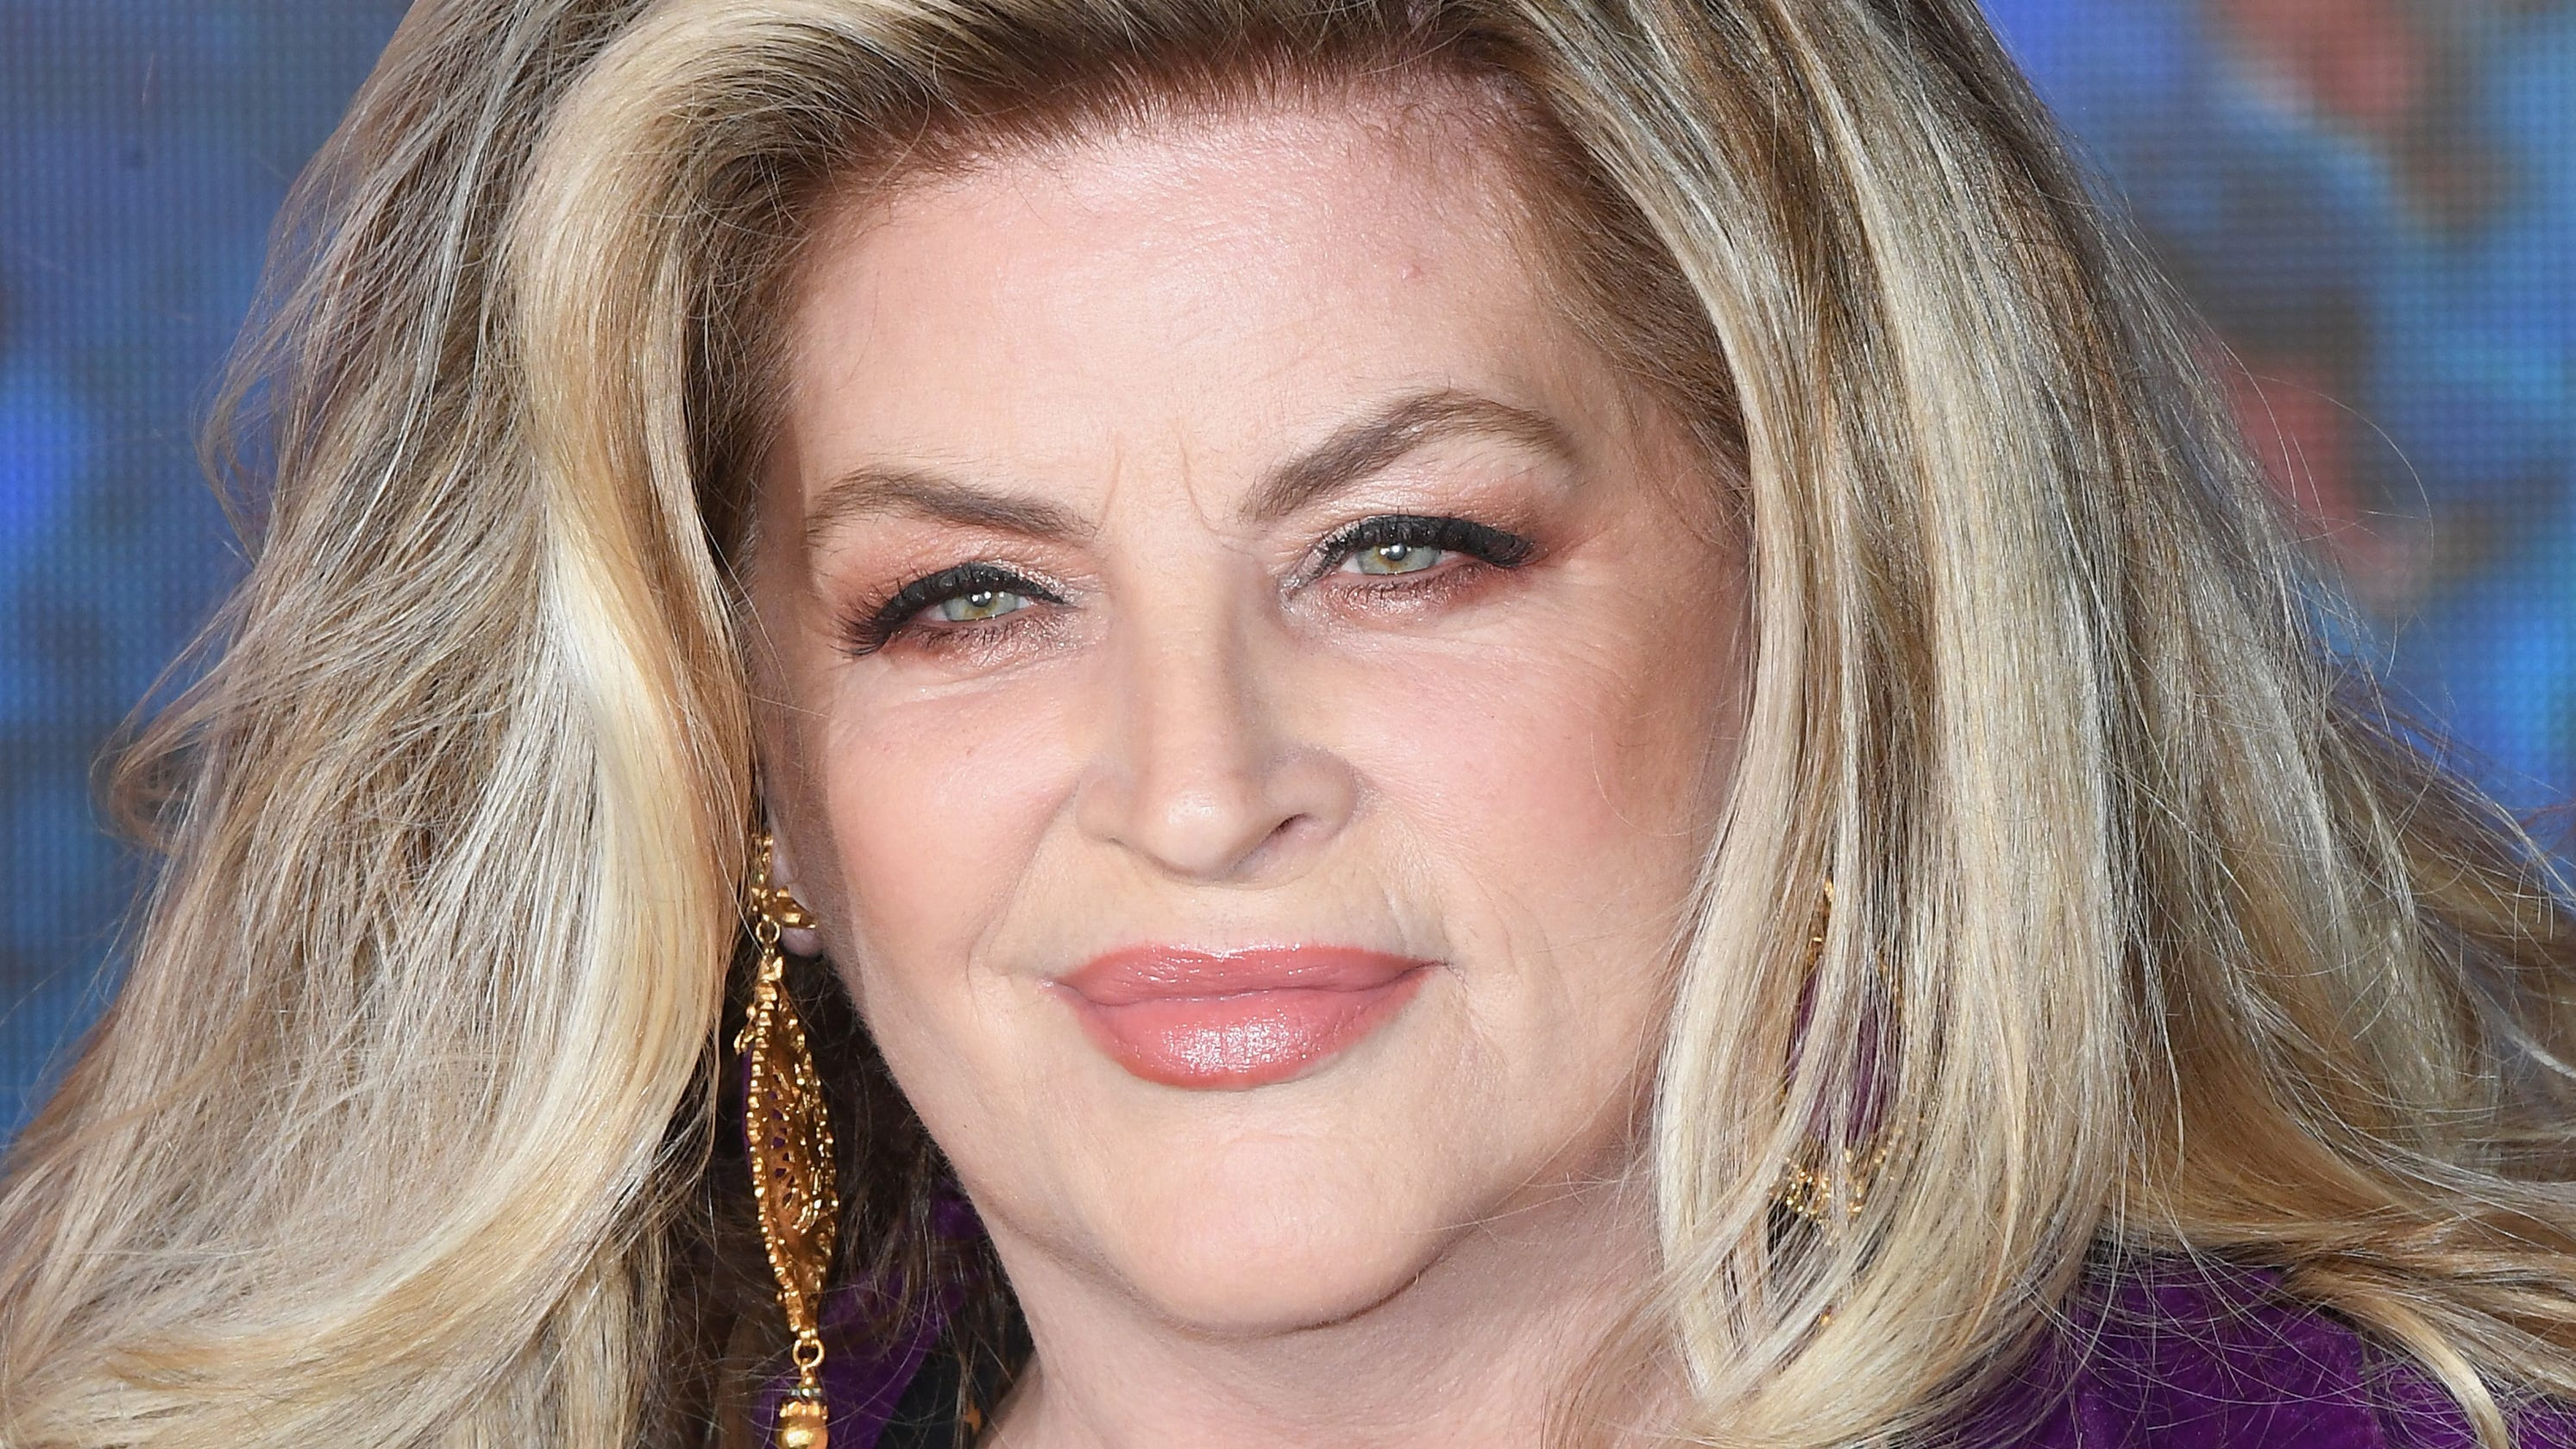 Kirstie Alley told not to 'downplay' loss of life after slamming CNN's COVID-19 coverage